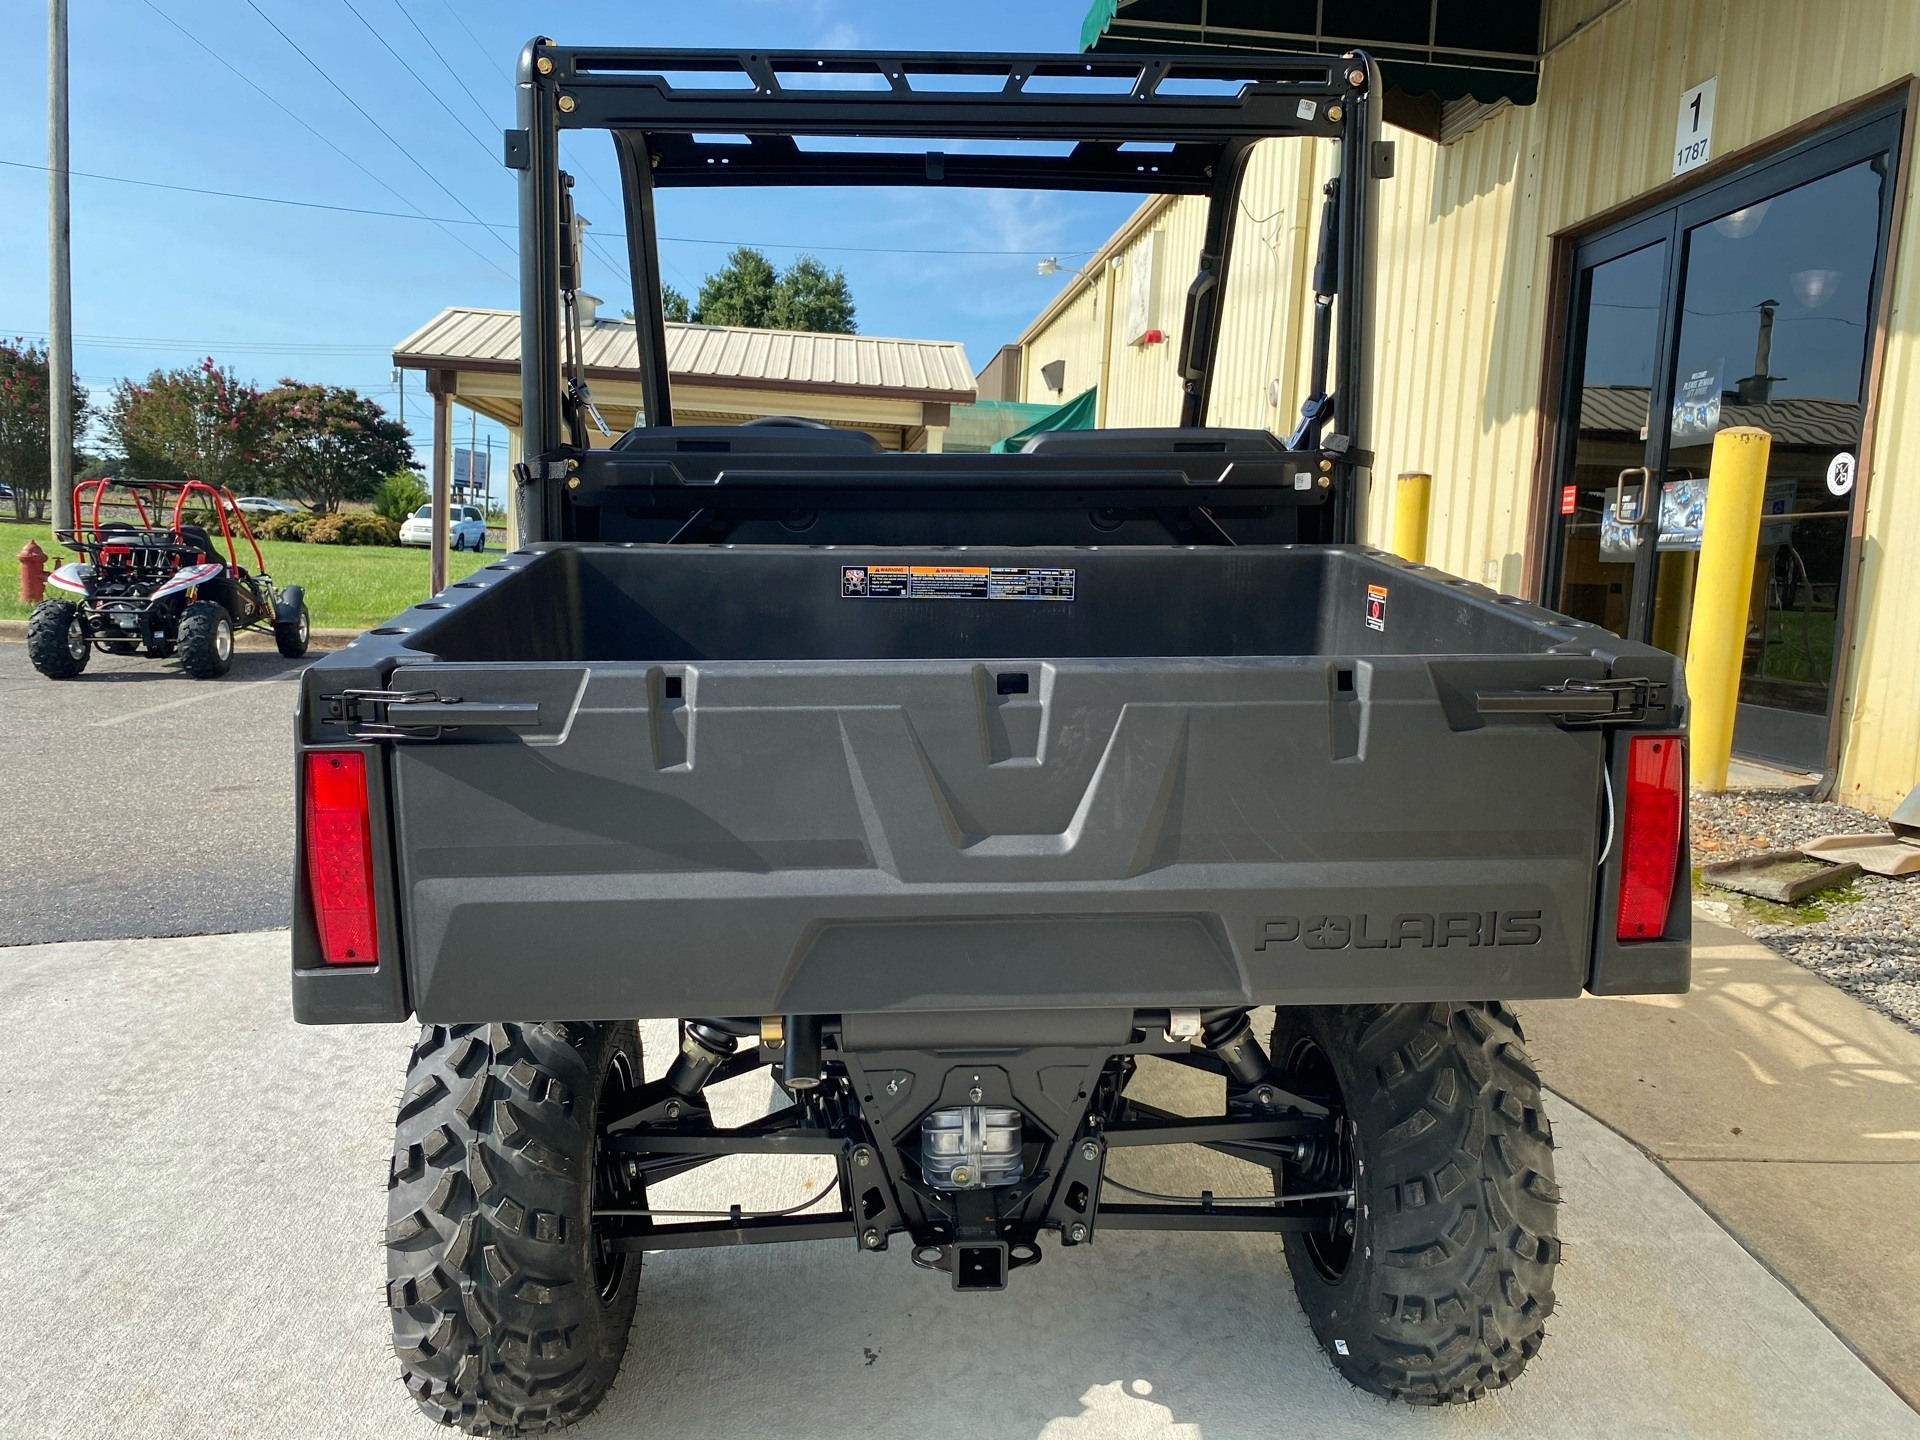 2021 Polaris Ranger 500 in Statesville, North Carolina - Photo 3